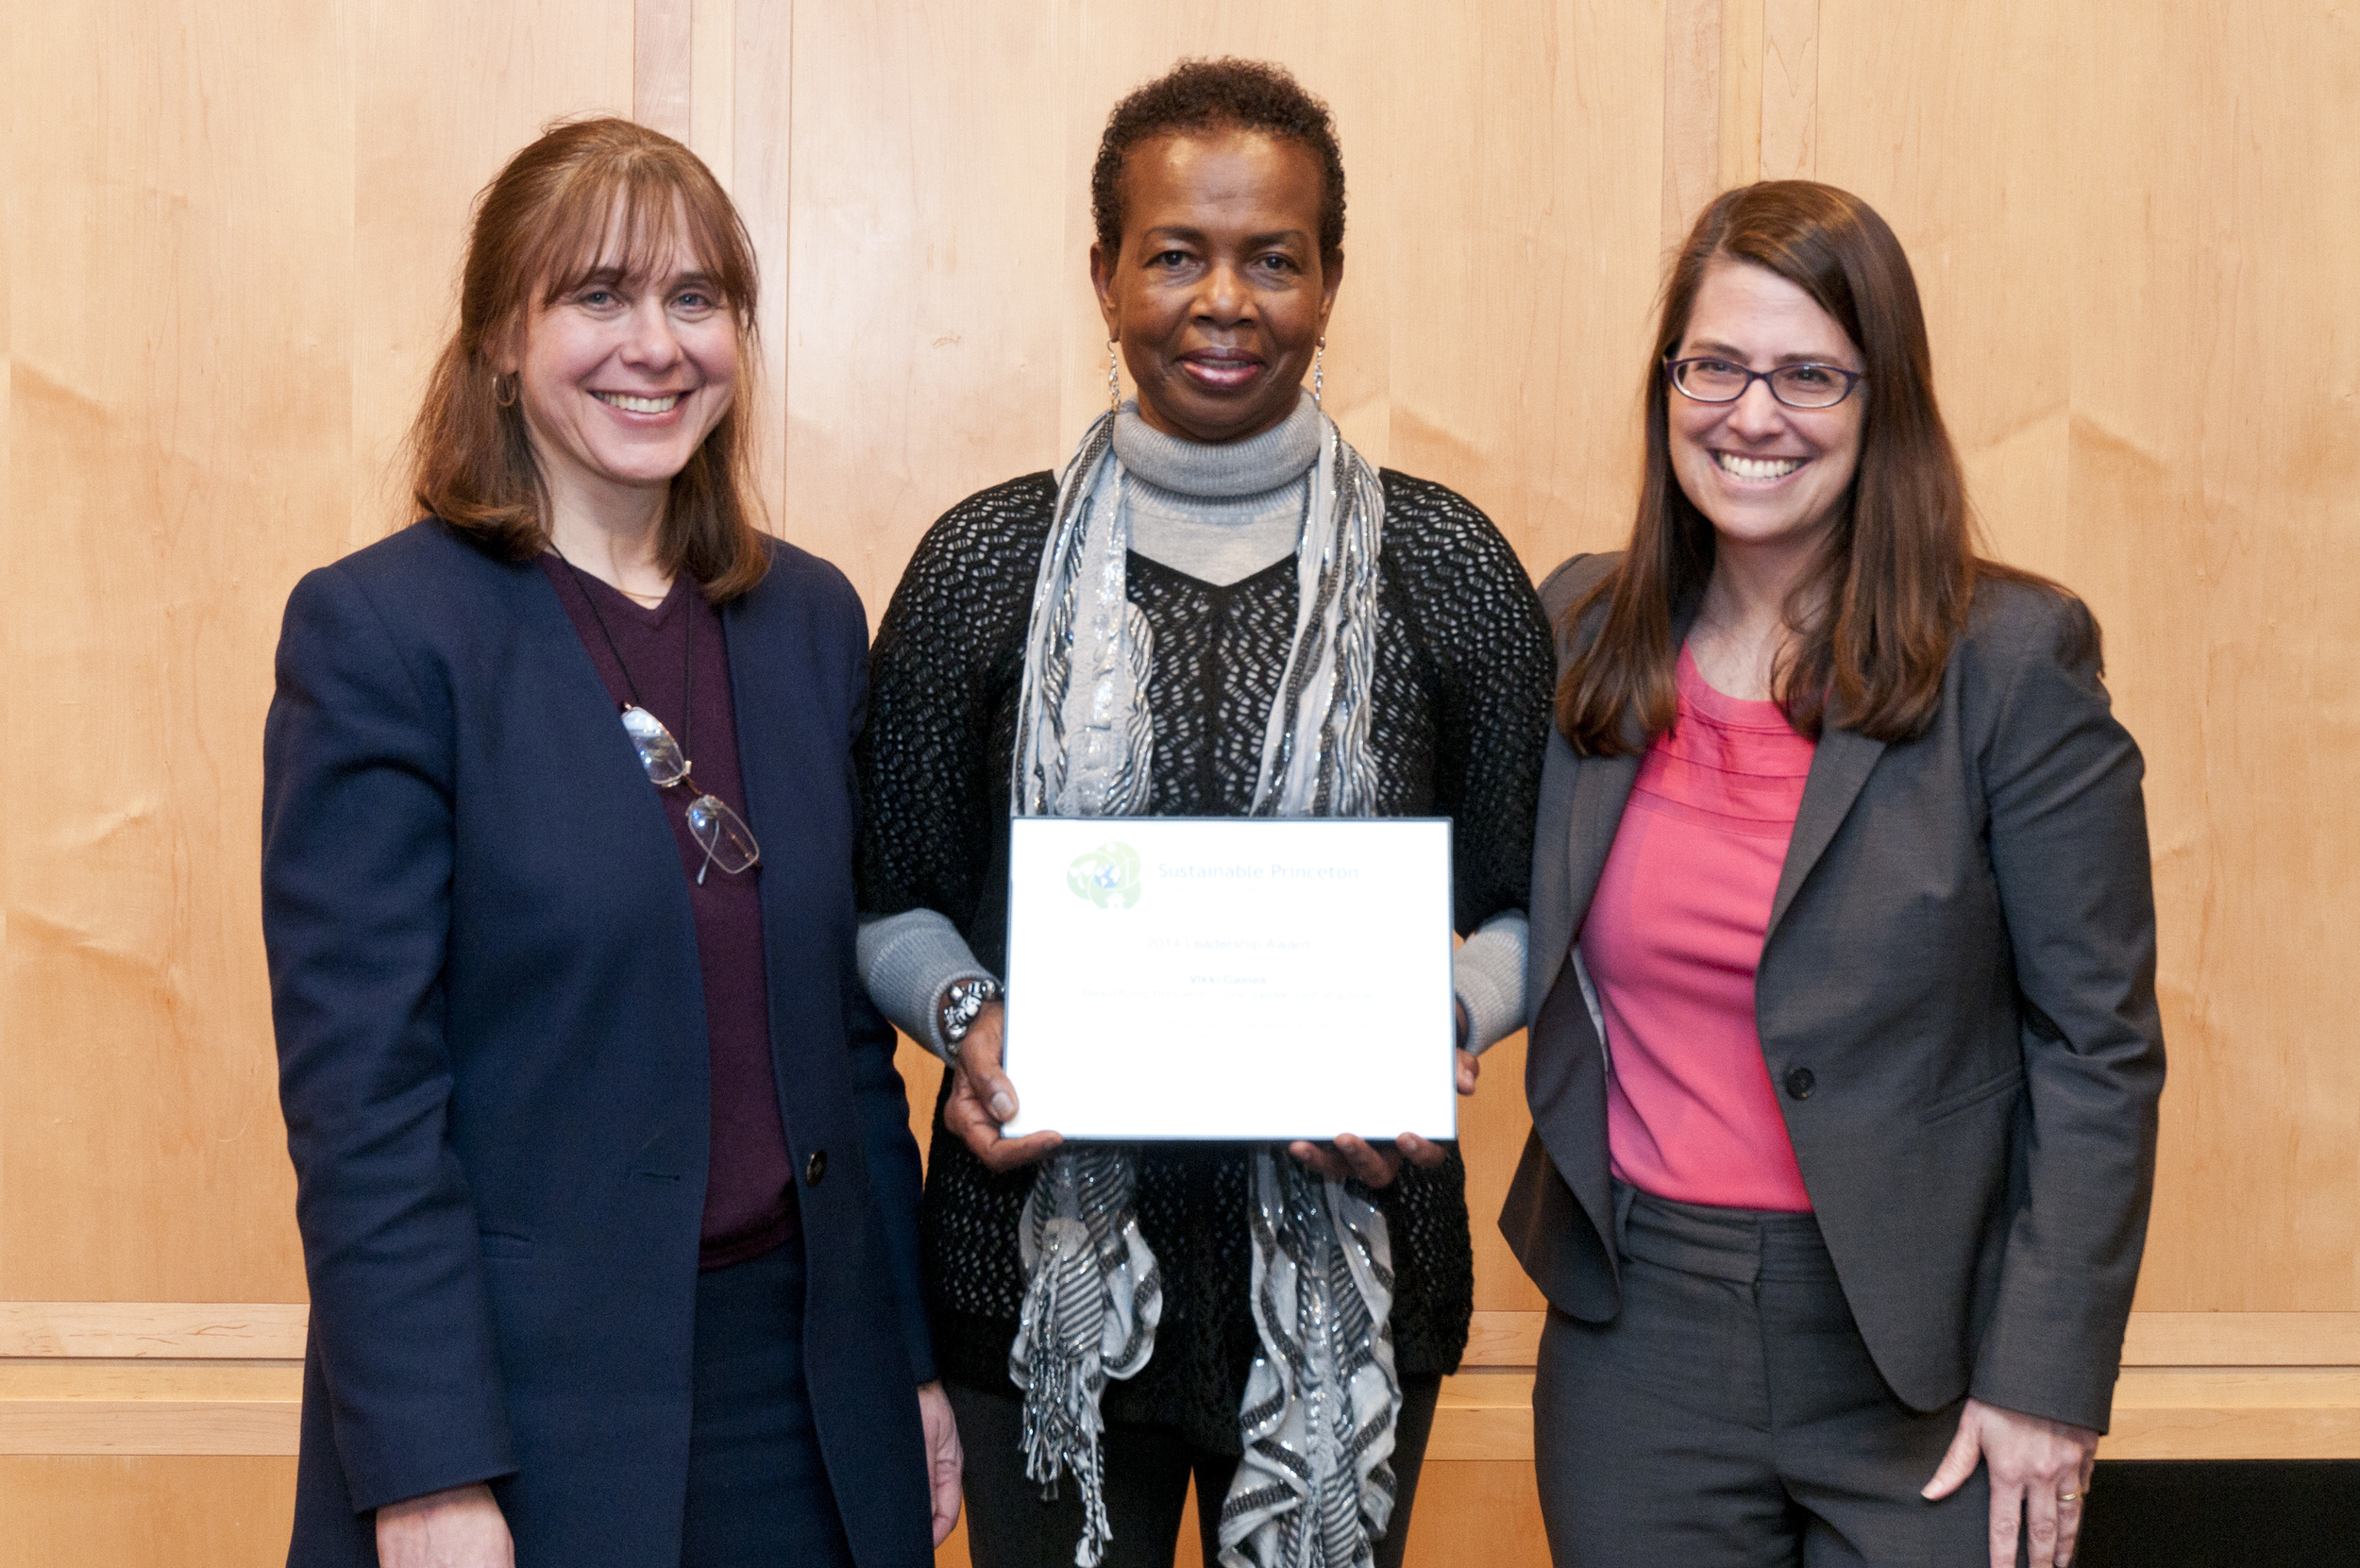 Vikki Caines accepting award with Sustainable Princeton Vice-Chair, Heidi Fichtenbaum and Mayor Liz Lempert. Photo by Cyndi Shattuck.